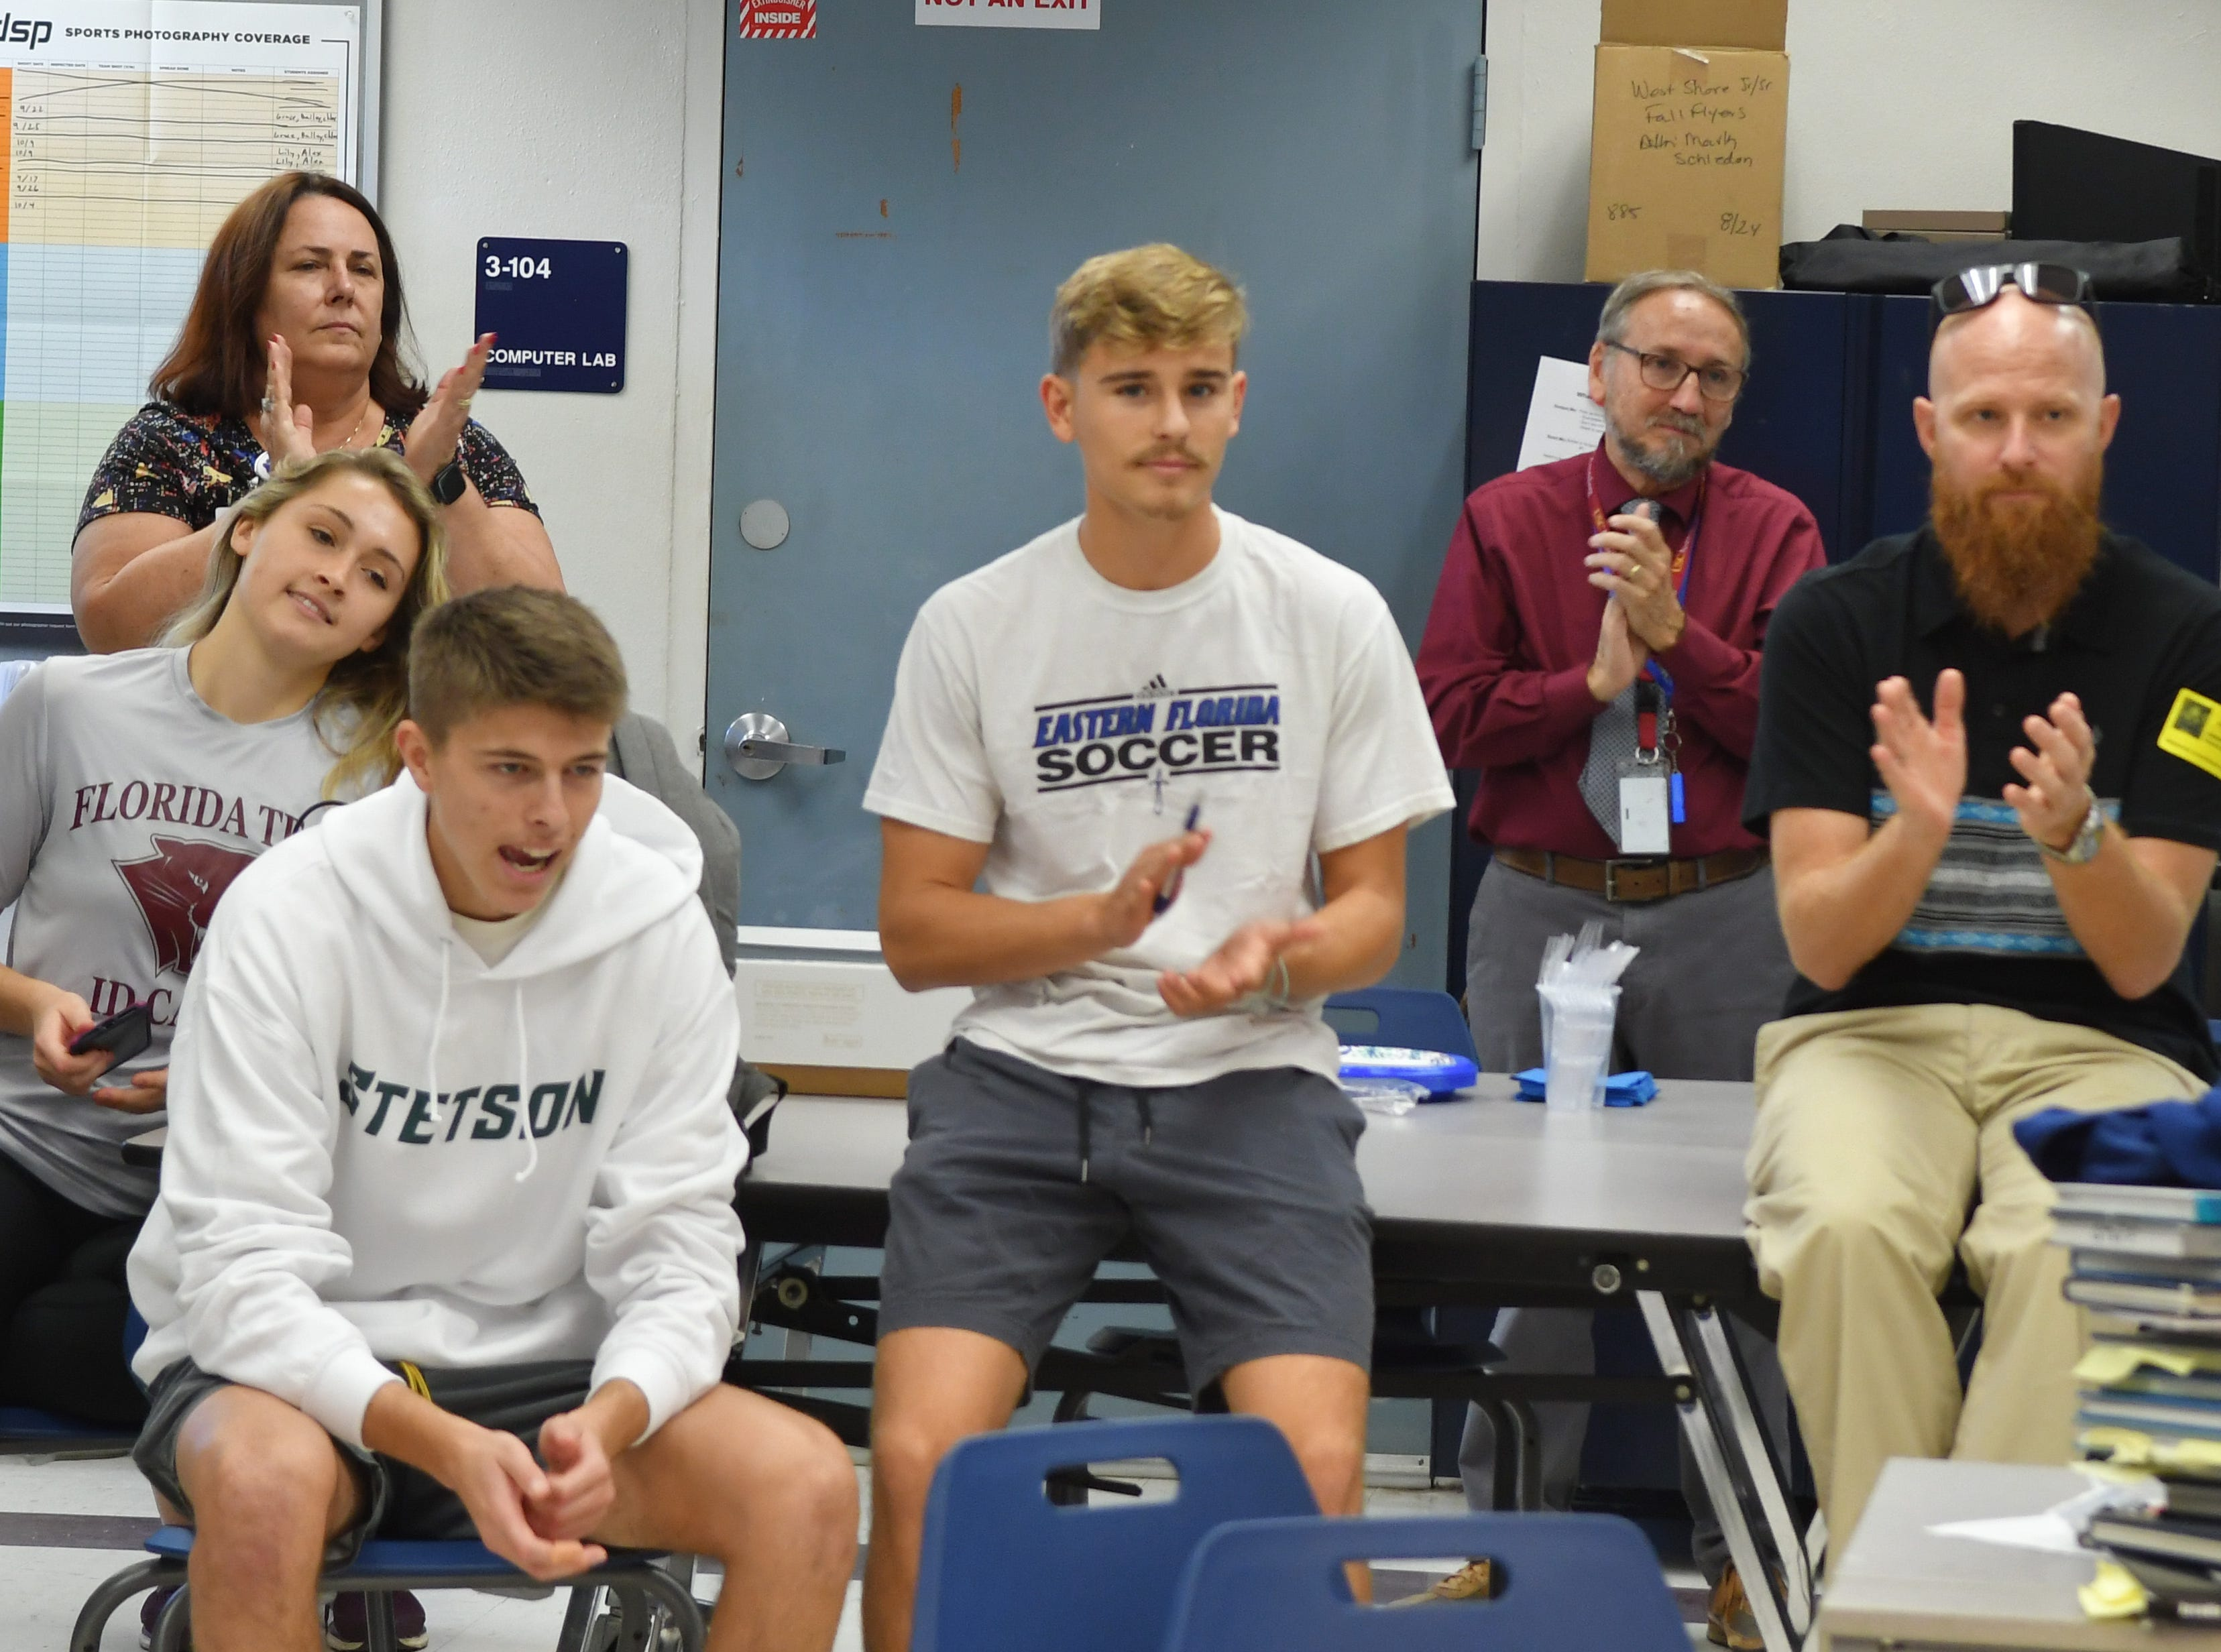 Five soccer athletes from West Shore Junior/Senior High School in Melbourne signed letters of intent on Wednesday. Avery Kloeppel, Florida Tech, Cameron Yeutter, Collin Robidoux and Ian Leighton, all for Eastern Florida State College, and Chase Hester, for Stetson University.